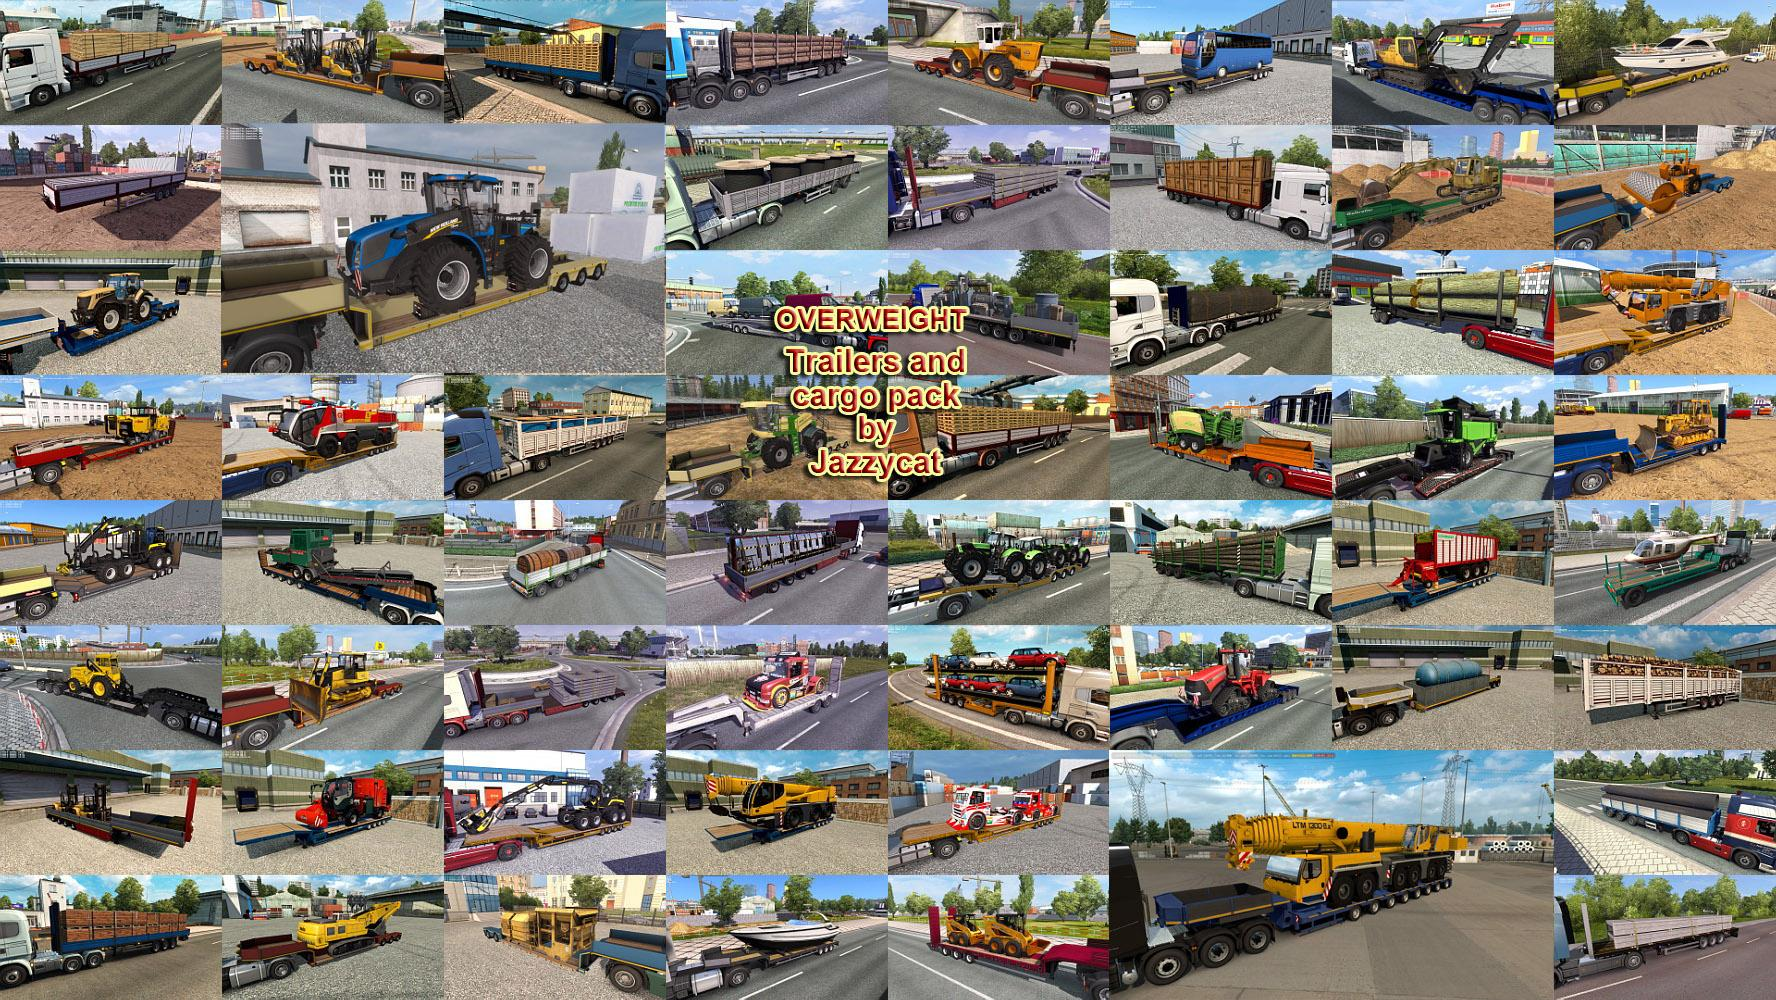 Overweight Trailers and Cargo Pack by Jazzycat v 7 9